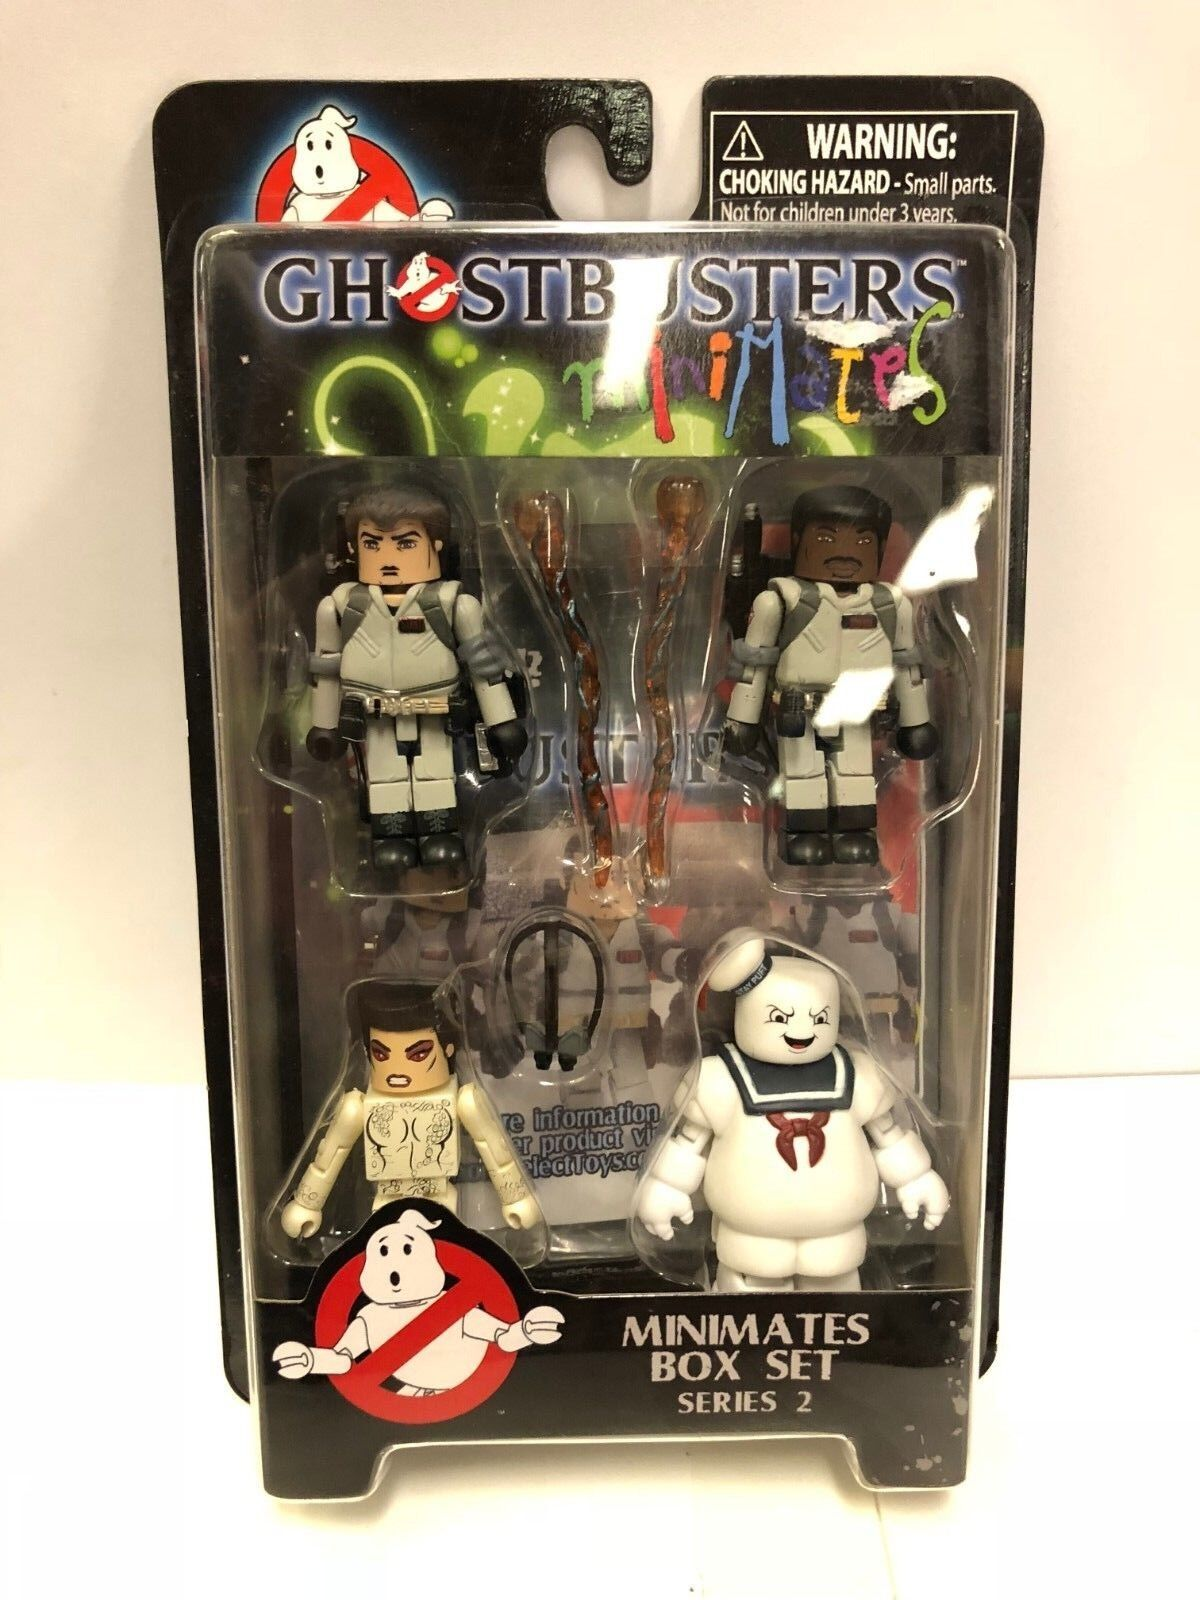 Ghostbusters MiniMates Box Set Series 2 Figure Set Diamond Select 2009